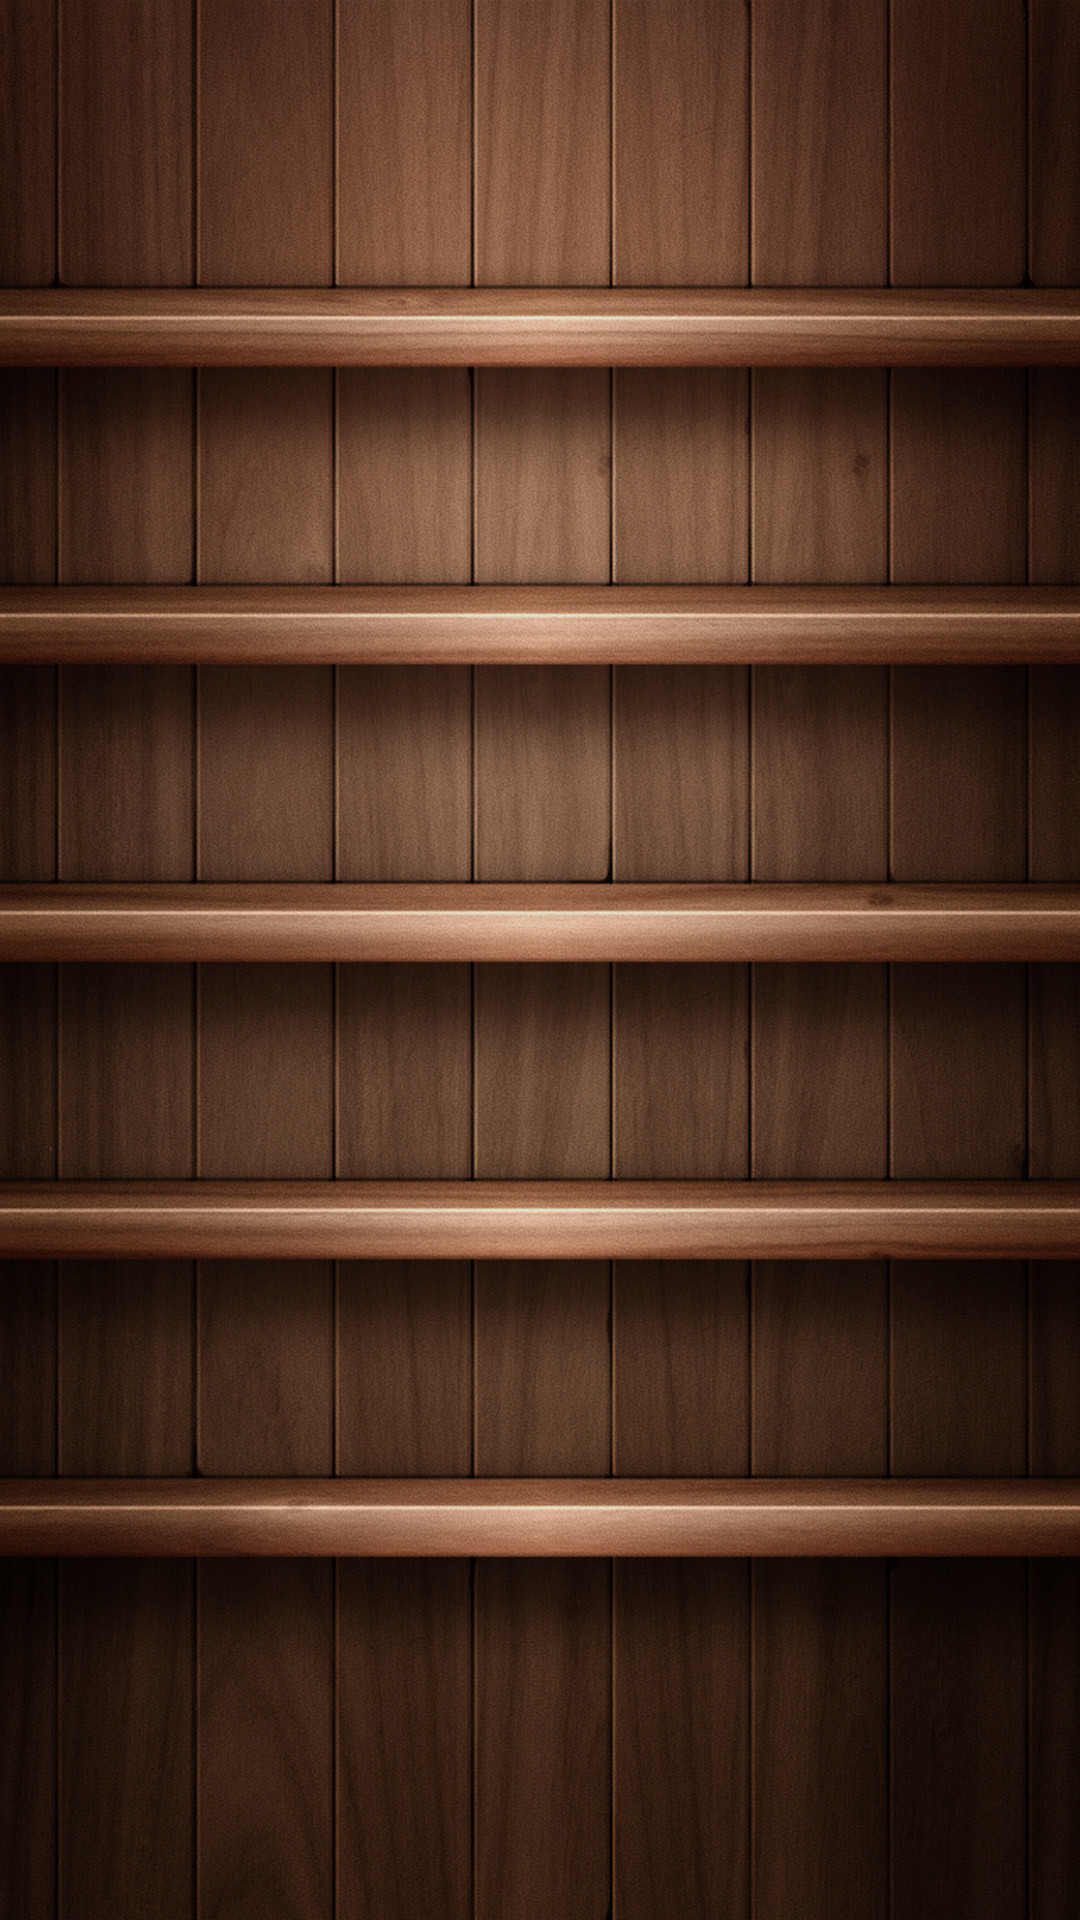 Iphone 6 Plus Wood Wallpaper 83 Images